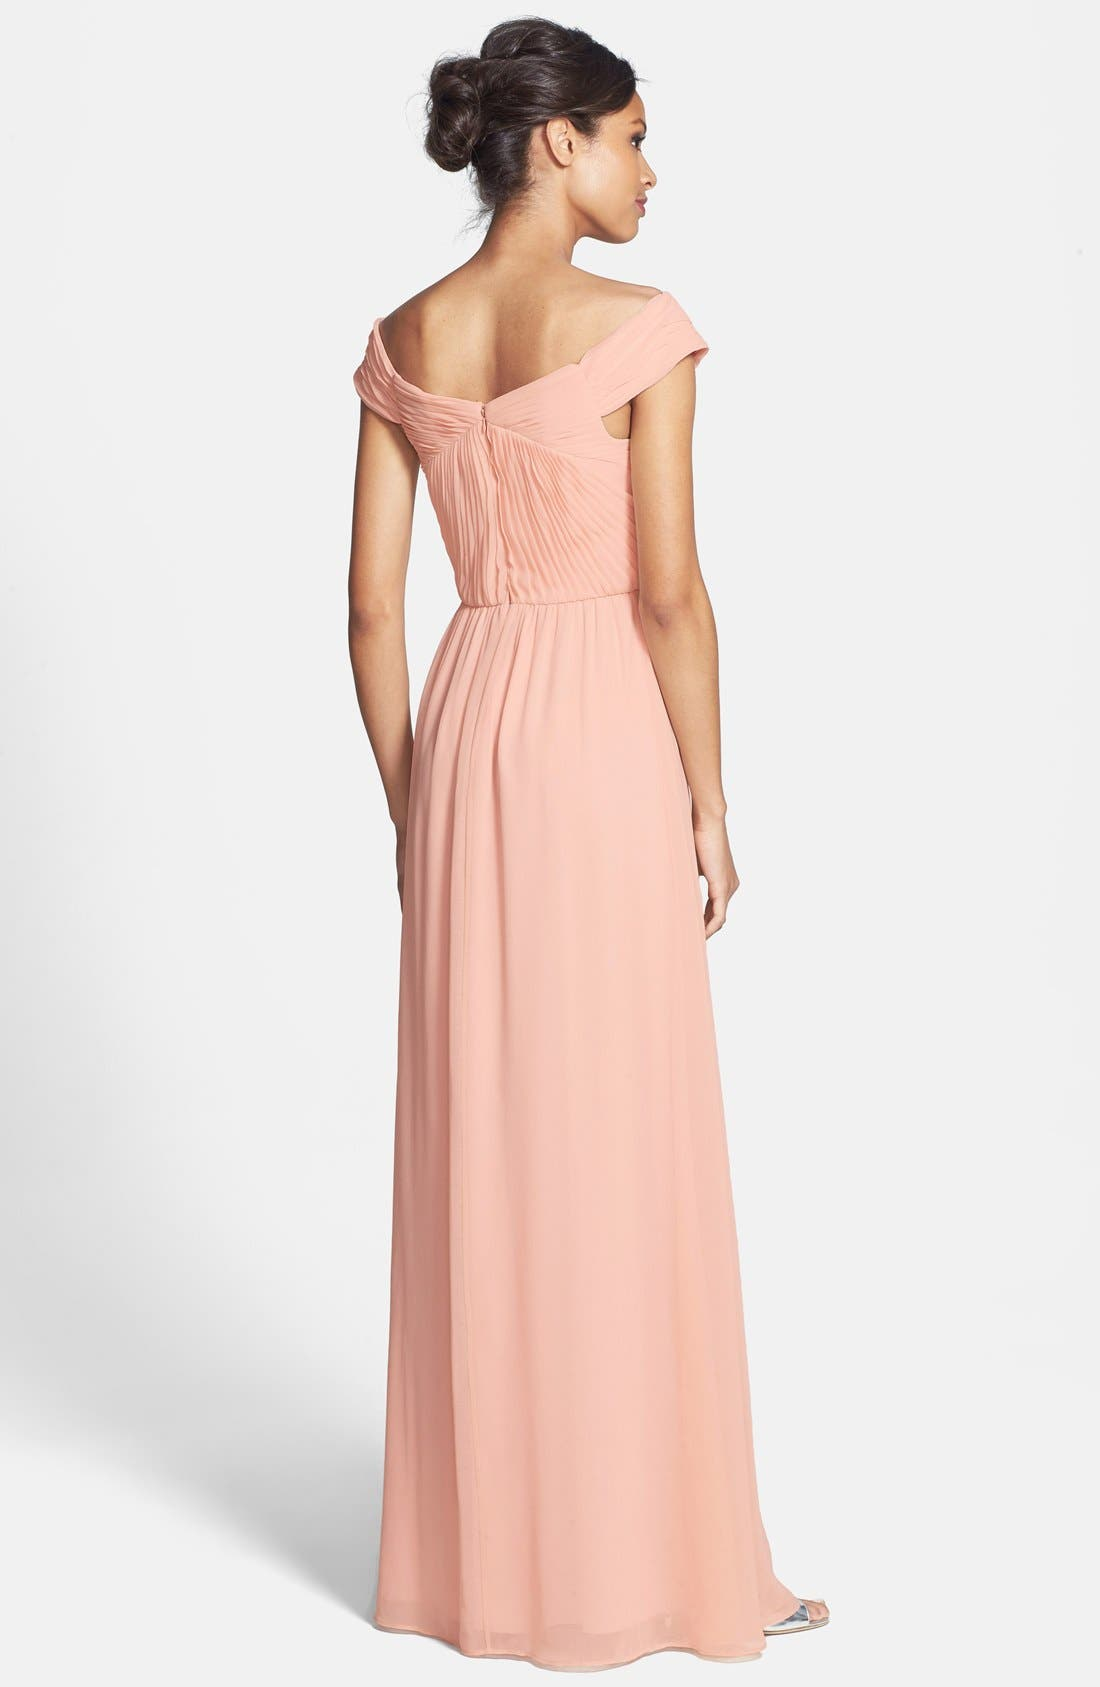 Alternate Image 2  - ERIN erin fetherston 'Clarisse' Off the Shoulder Front Twist Chiffon Gown